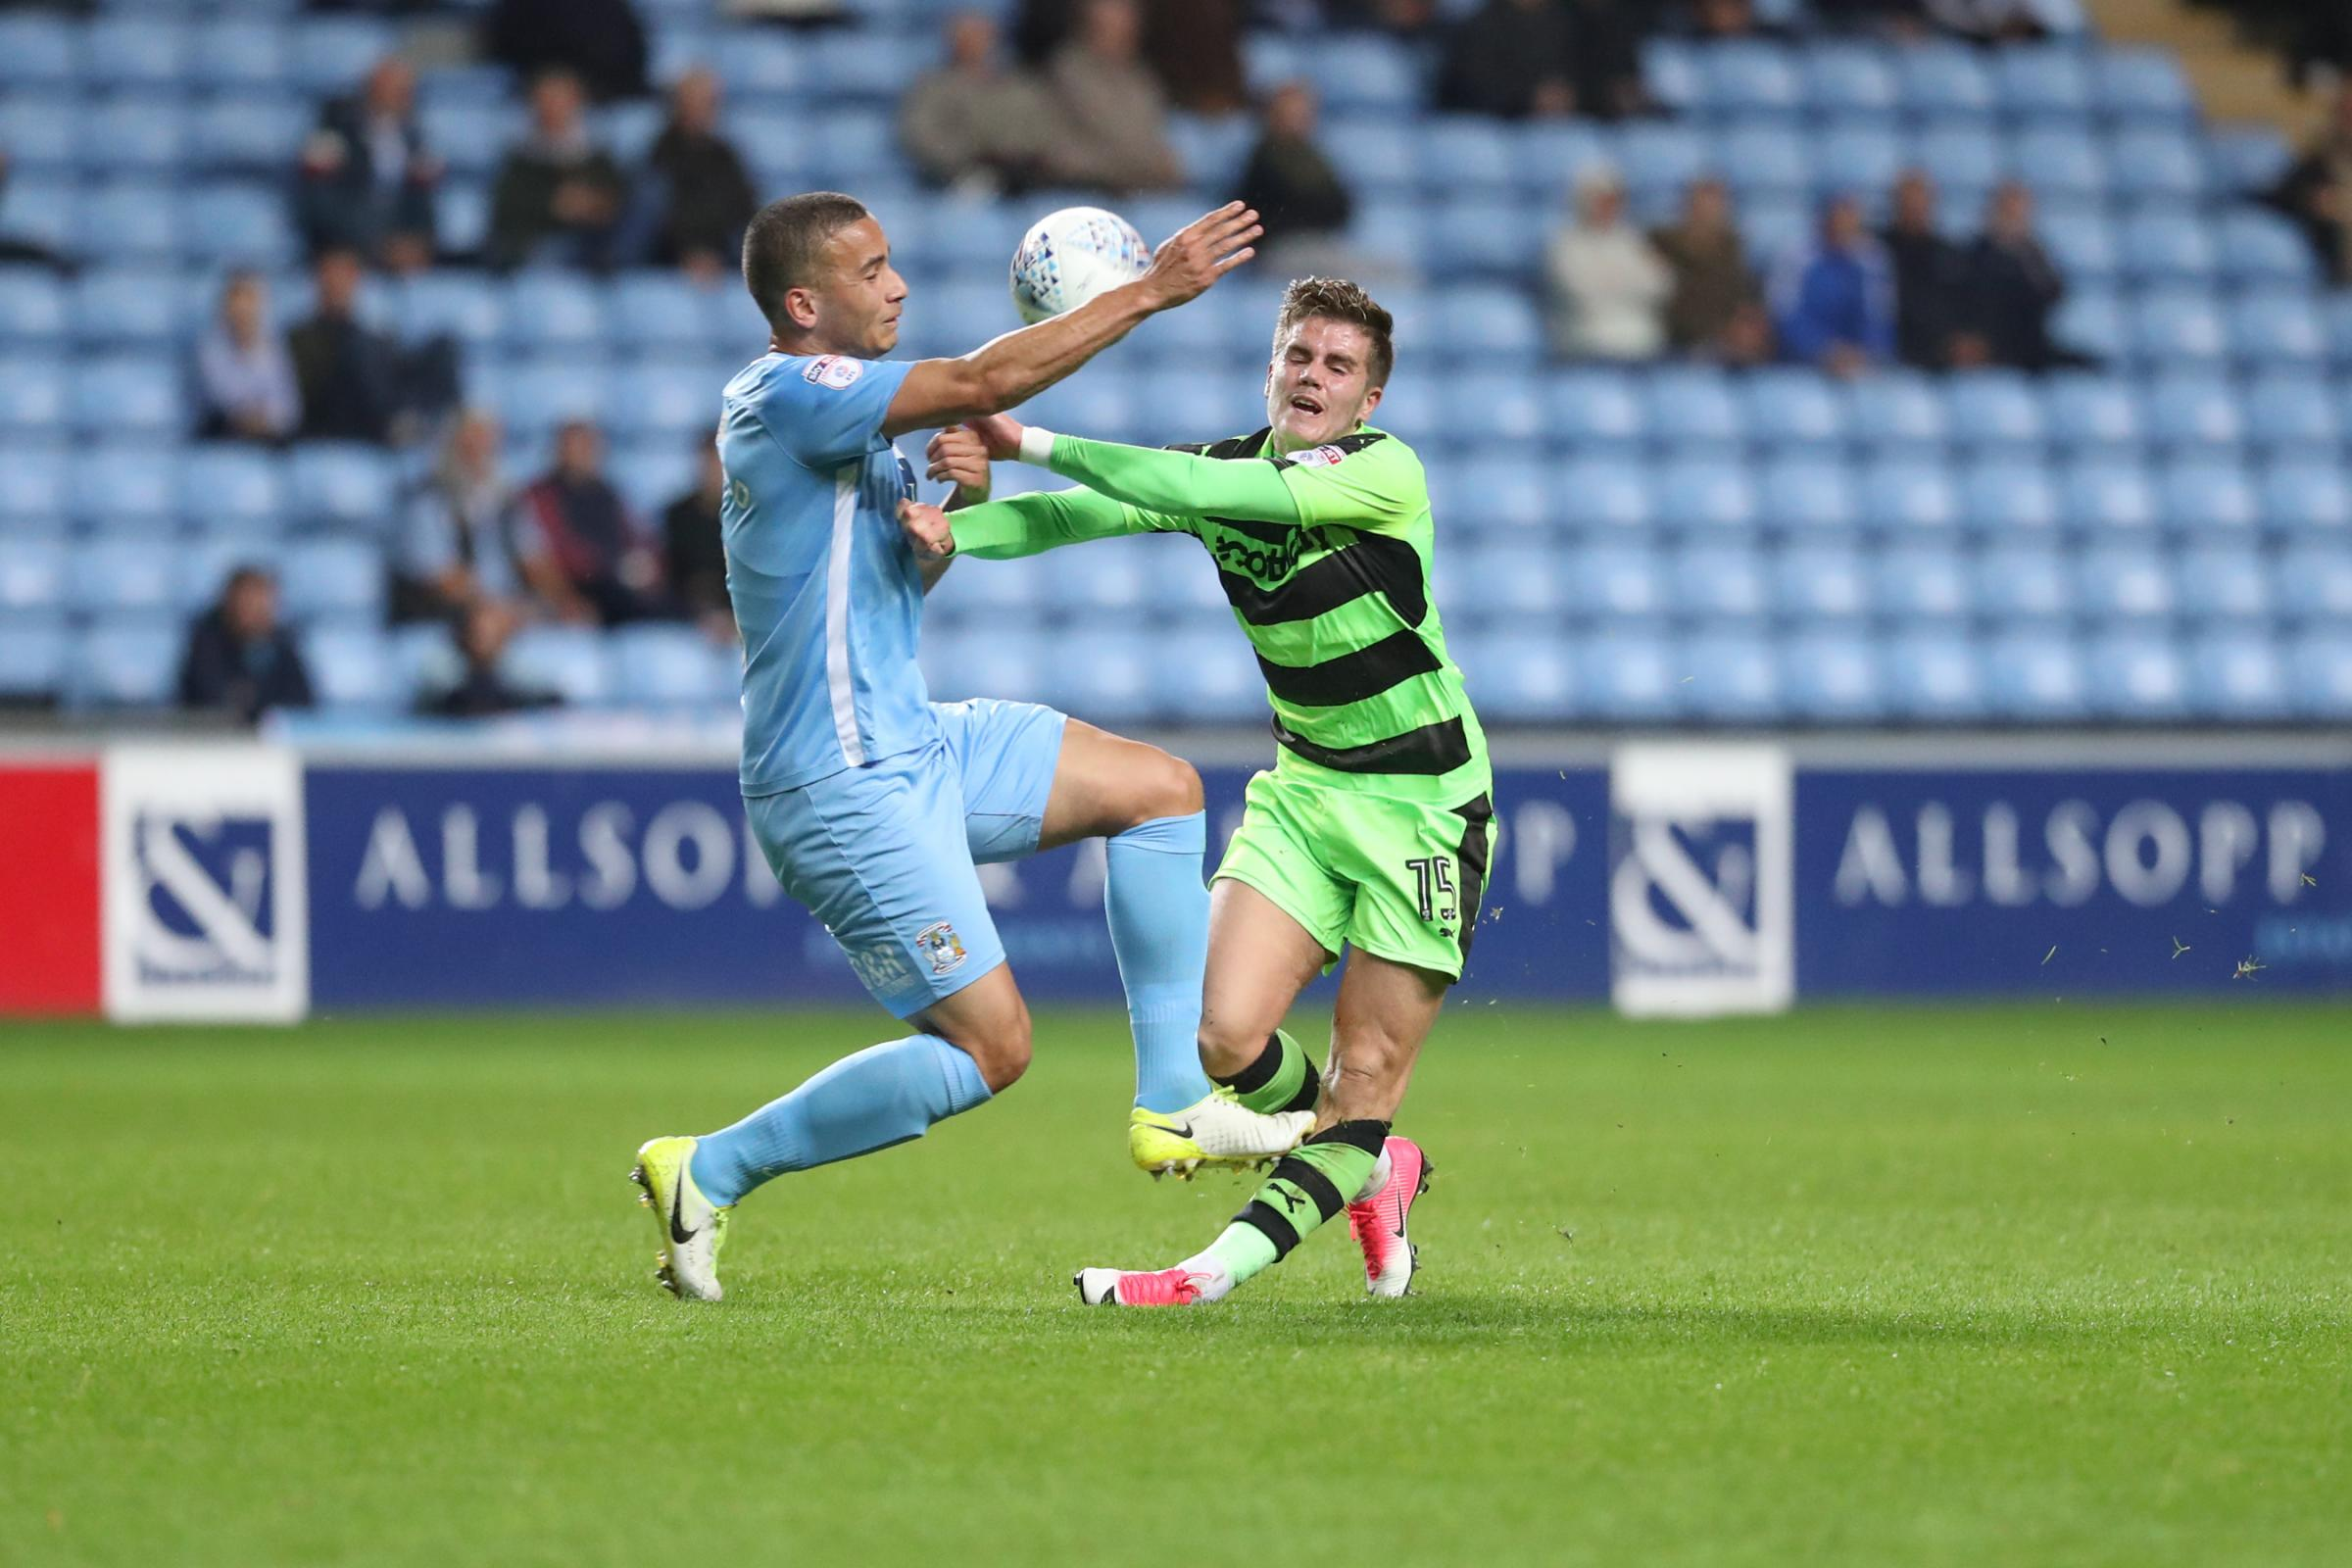 Charlie Cooper faces a lengthy absence following this horror tackle at Coventry City                              Pic: Shane Healey/ Pro Sports Images